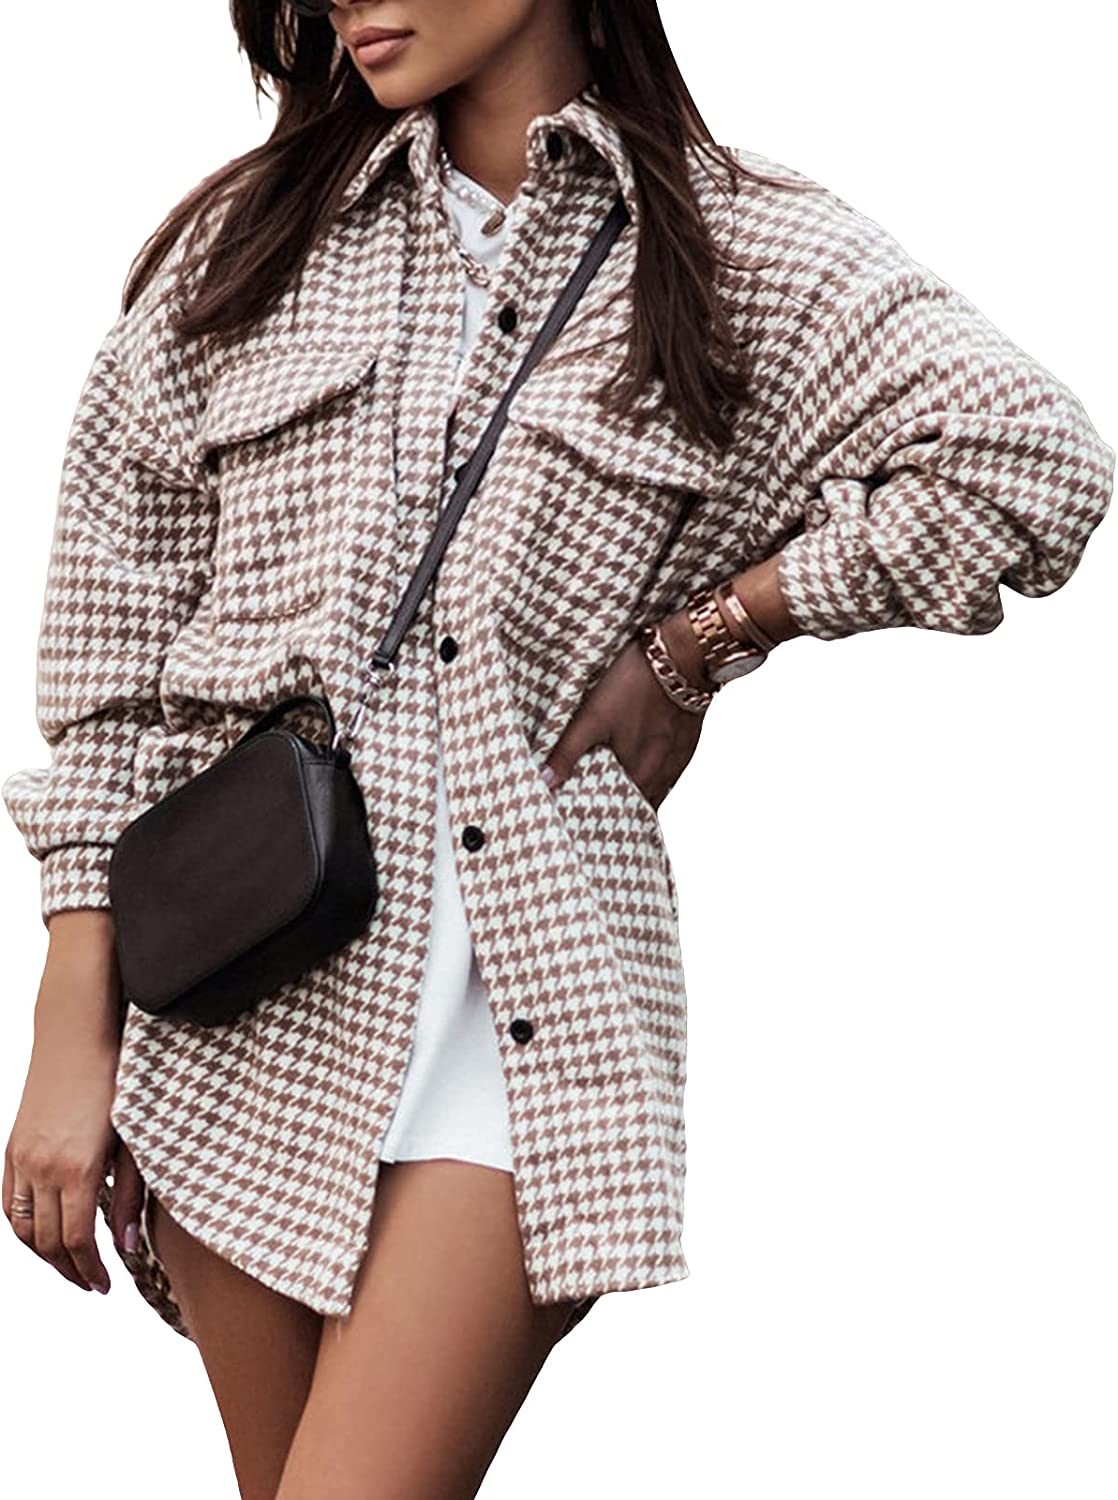 Women Casual Plaid Button Down Shirts Girls Long Sleeve Lapel Shacket Cardigan Loose Blouse Tops Outwear with Pocket